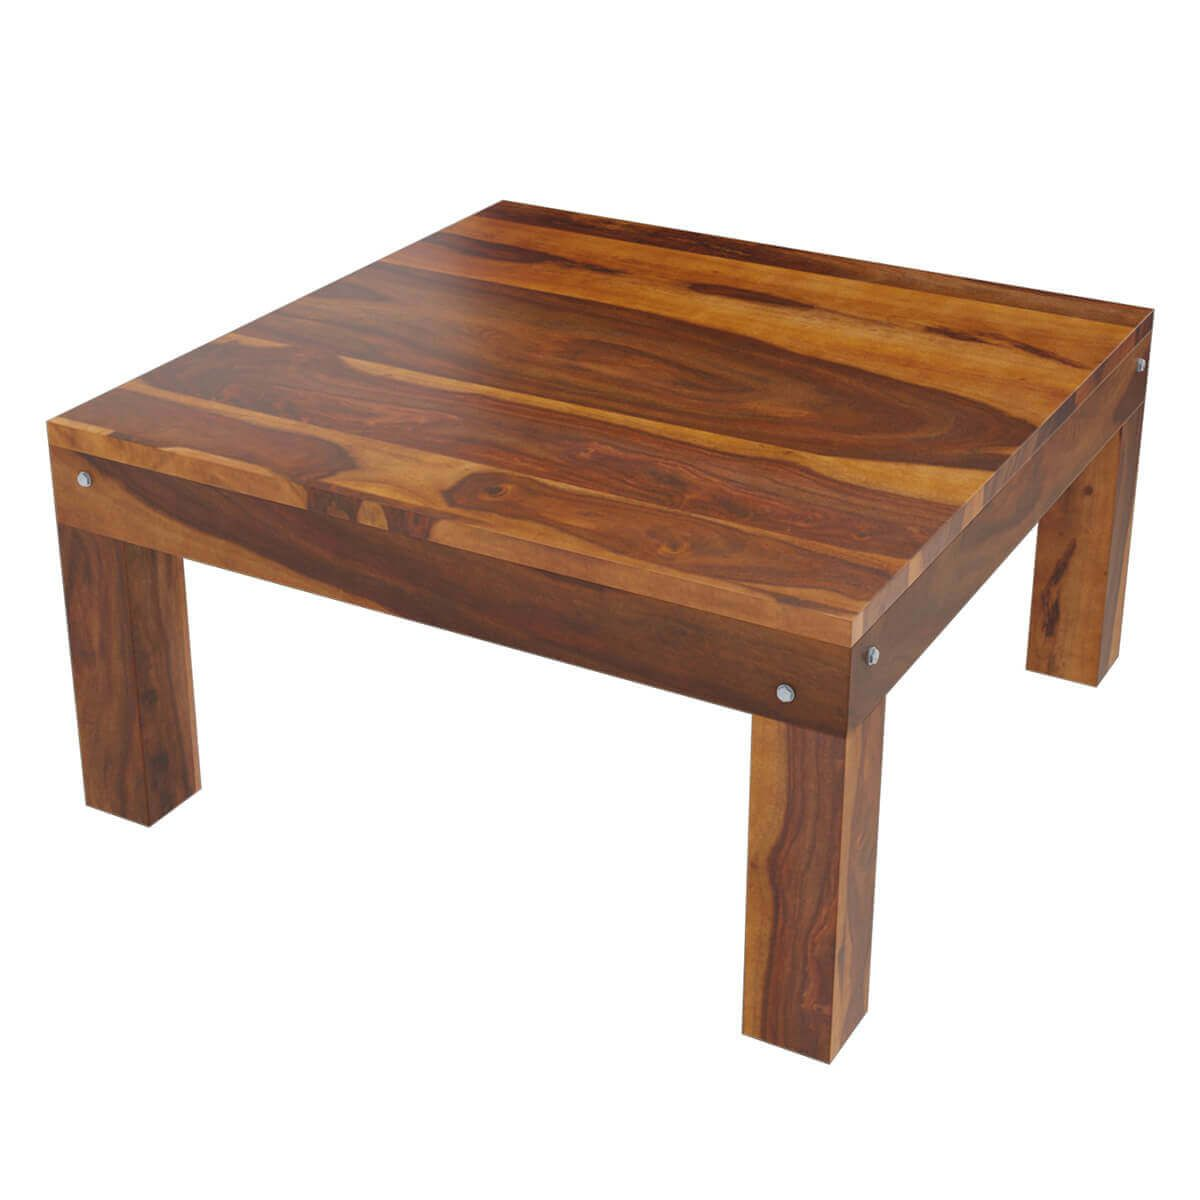 Patet Contemporary Rustic Solid Wood 3 Piece Coffee Table Set In 2021 3 Piece Coffee Table Set Coffee Table Coffee Table Square [ 1200 x 1200 Pixel ]